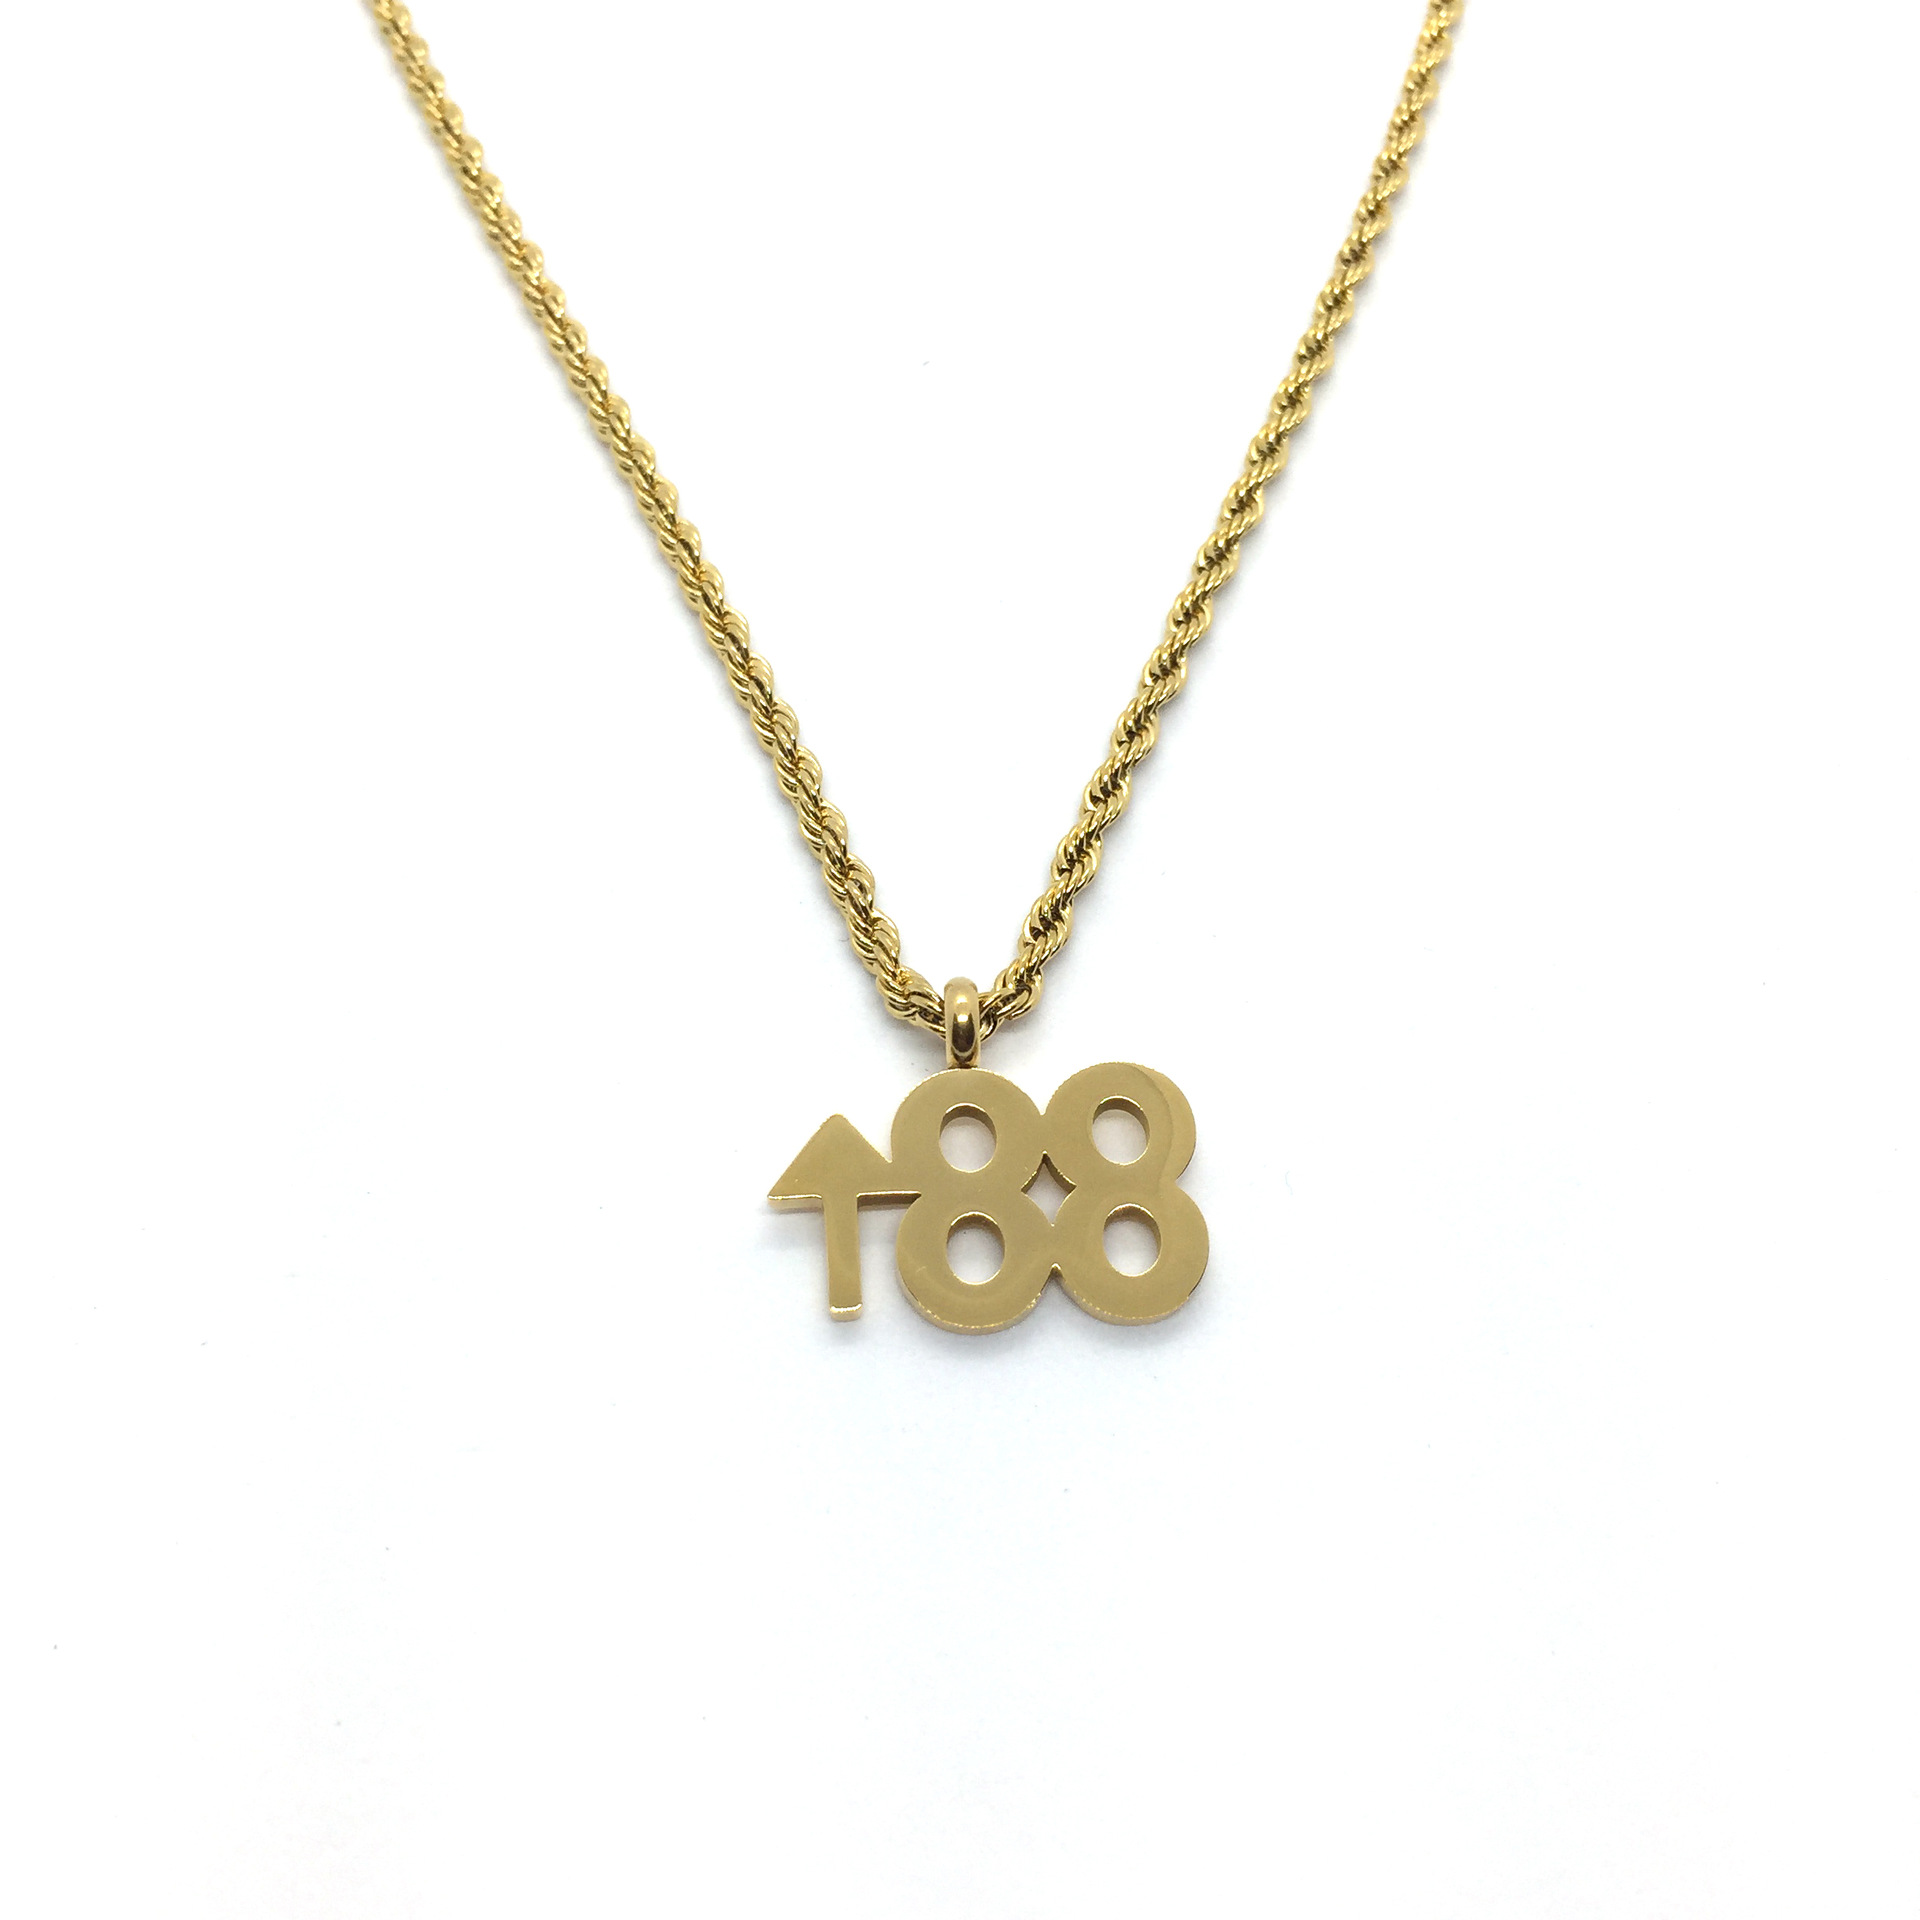 High Street Hip-Hop Necklace for Fashionable Style